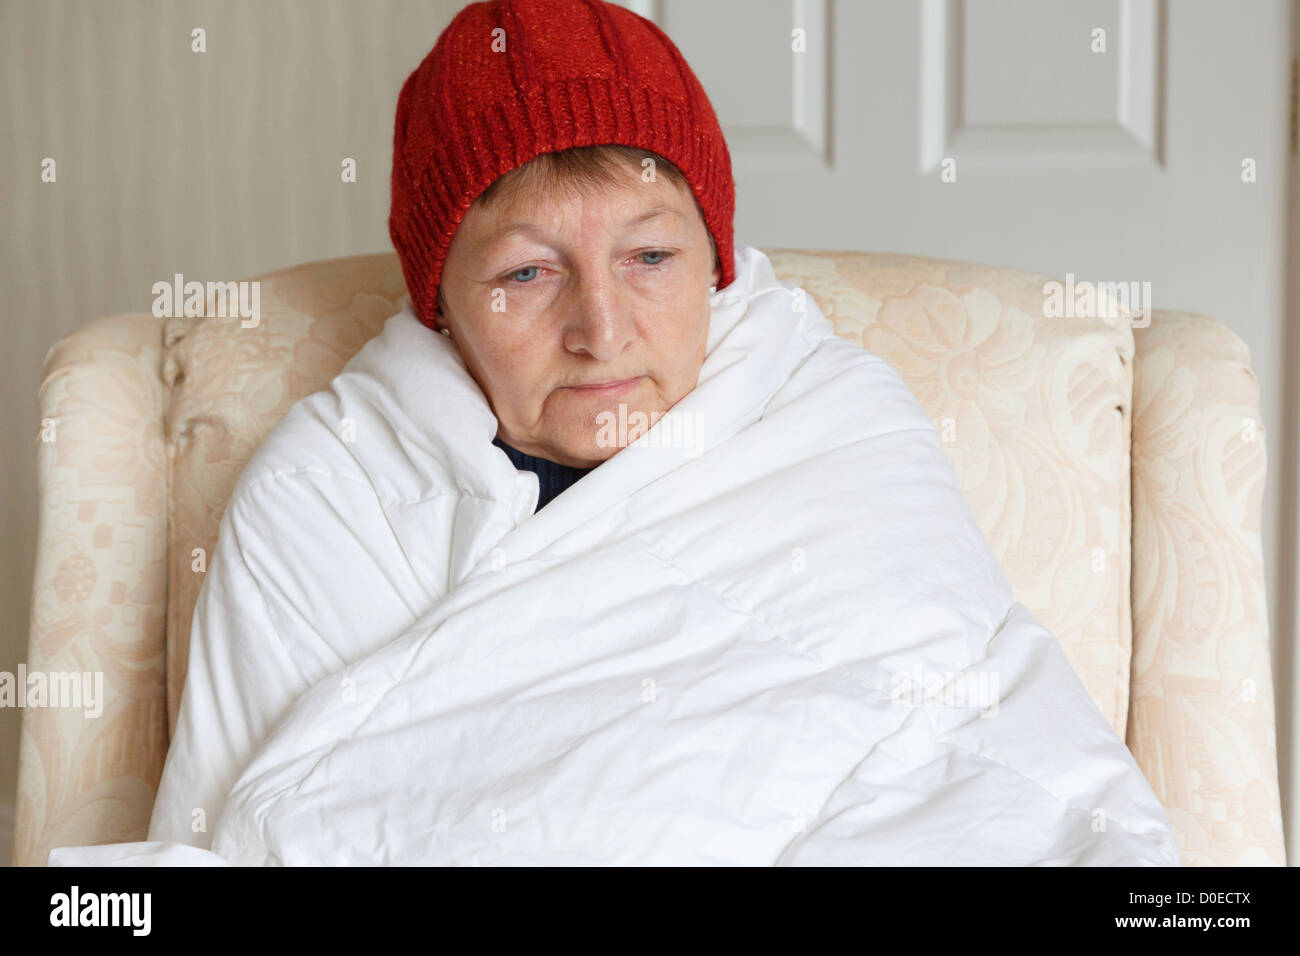 Senior woman feeling cold depressed and alone wearing a hat and wrapped in a duvet trying to keep warm and cosy - Stock Image